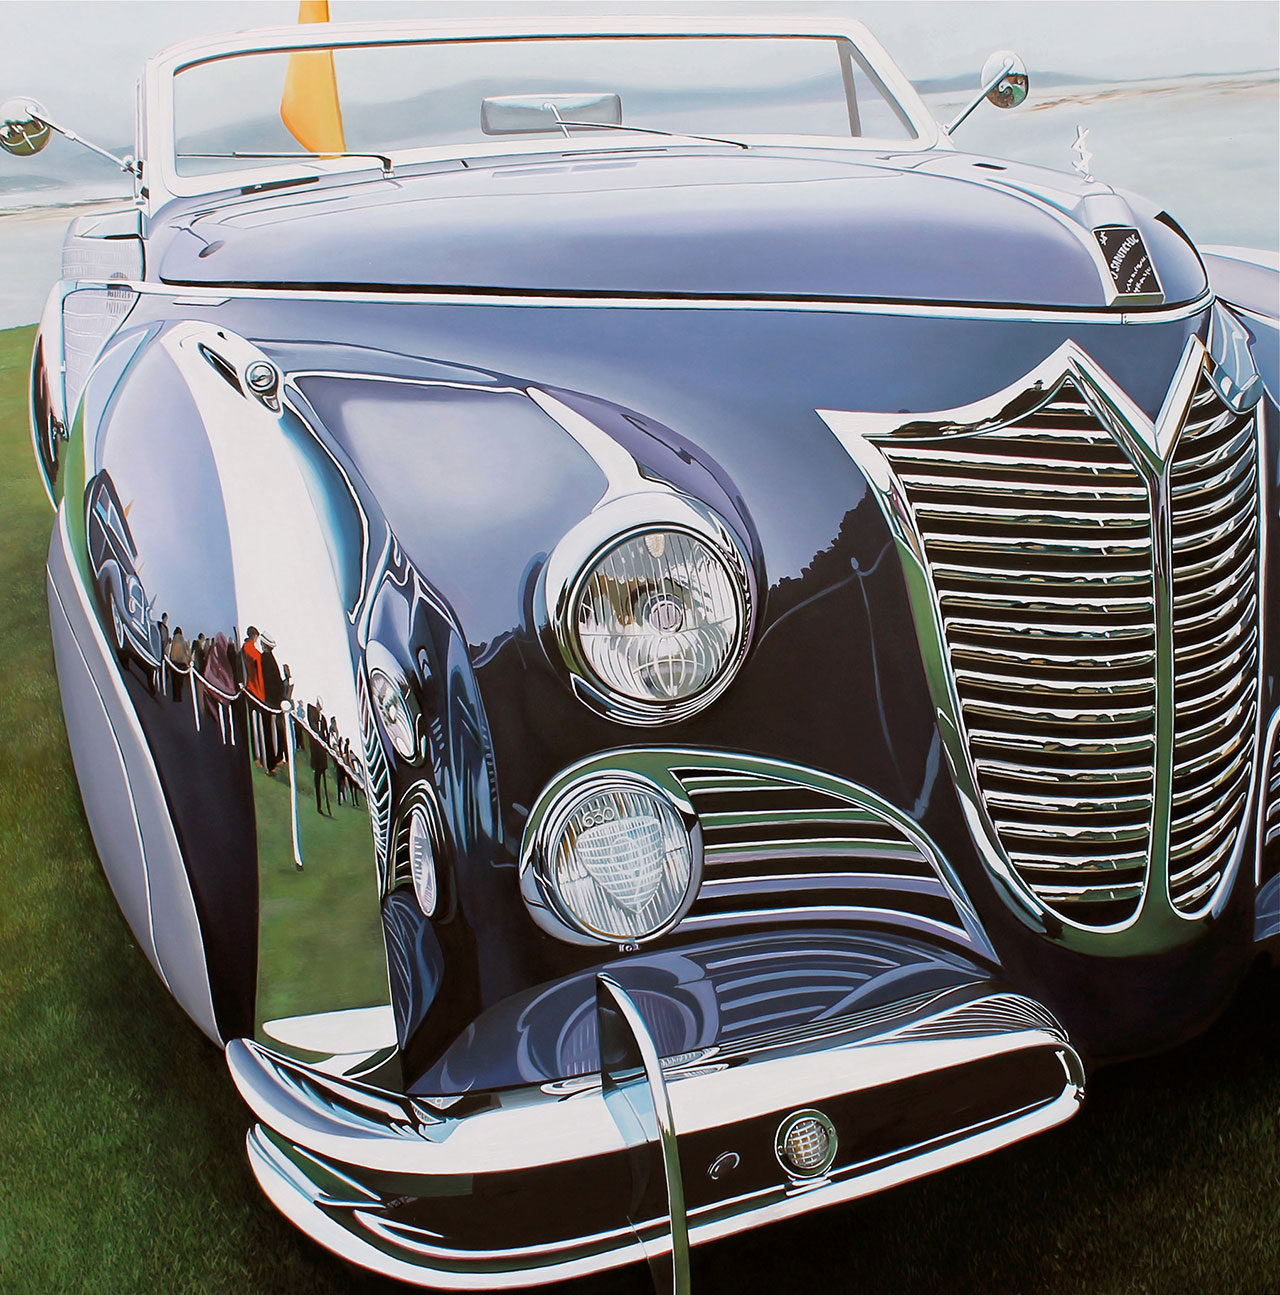 "Purple Cadillac, 2013, oil on aluminum panel, 30 x 30.5""   © Cheryl Kelley, Courtesy of Bernarducci Meisel Gallery"